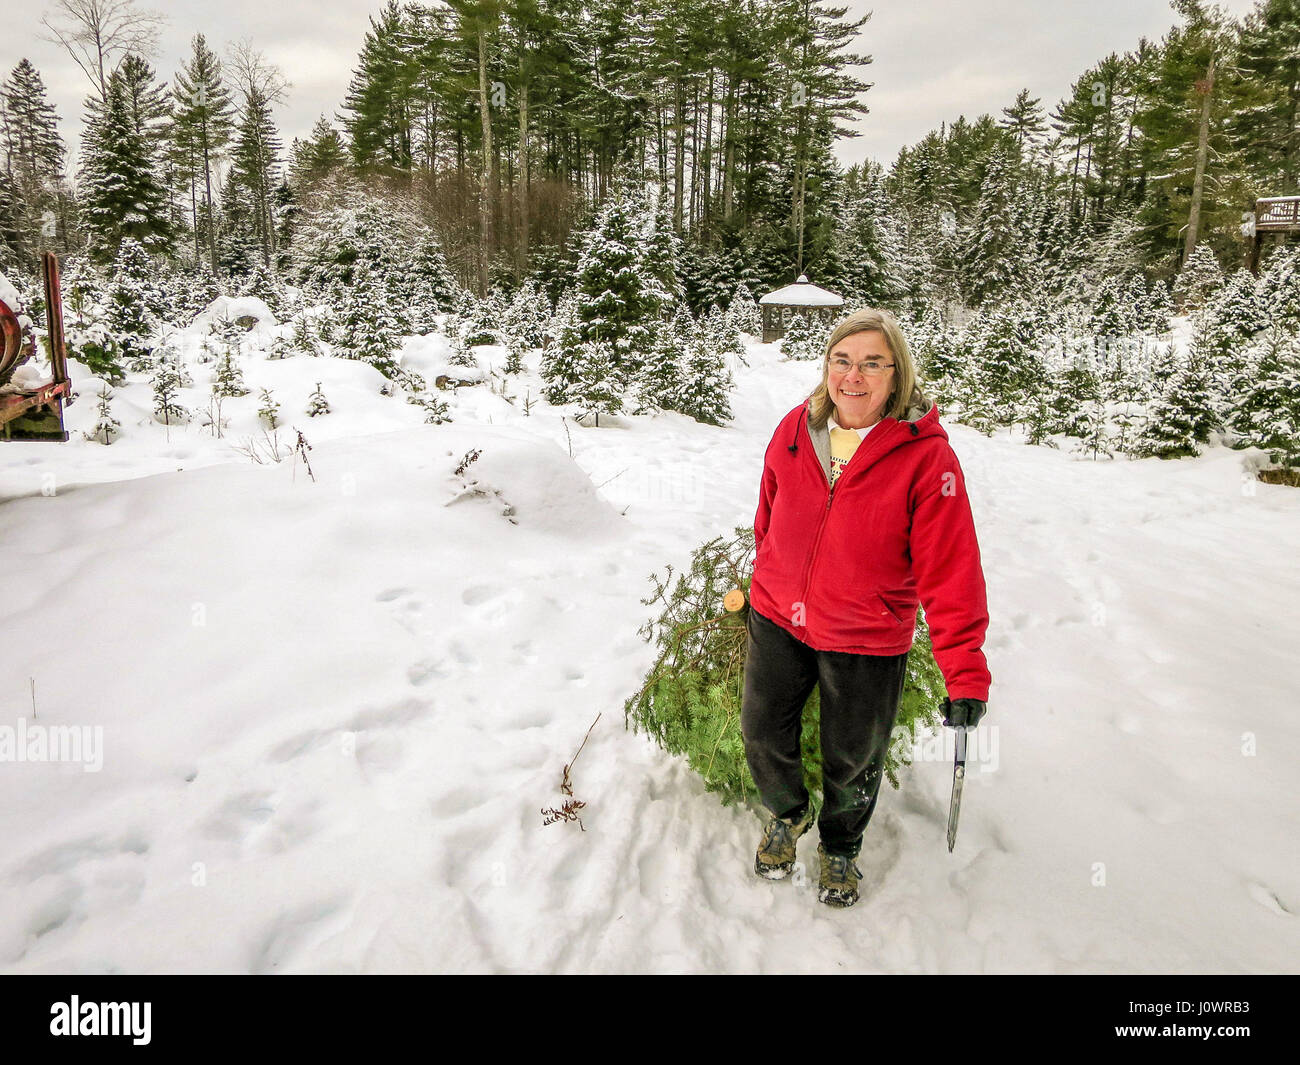 Christmas Tree Farm Snow Stock Photos & Christmas Tree Farm Snow ...